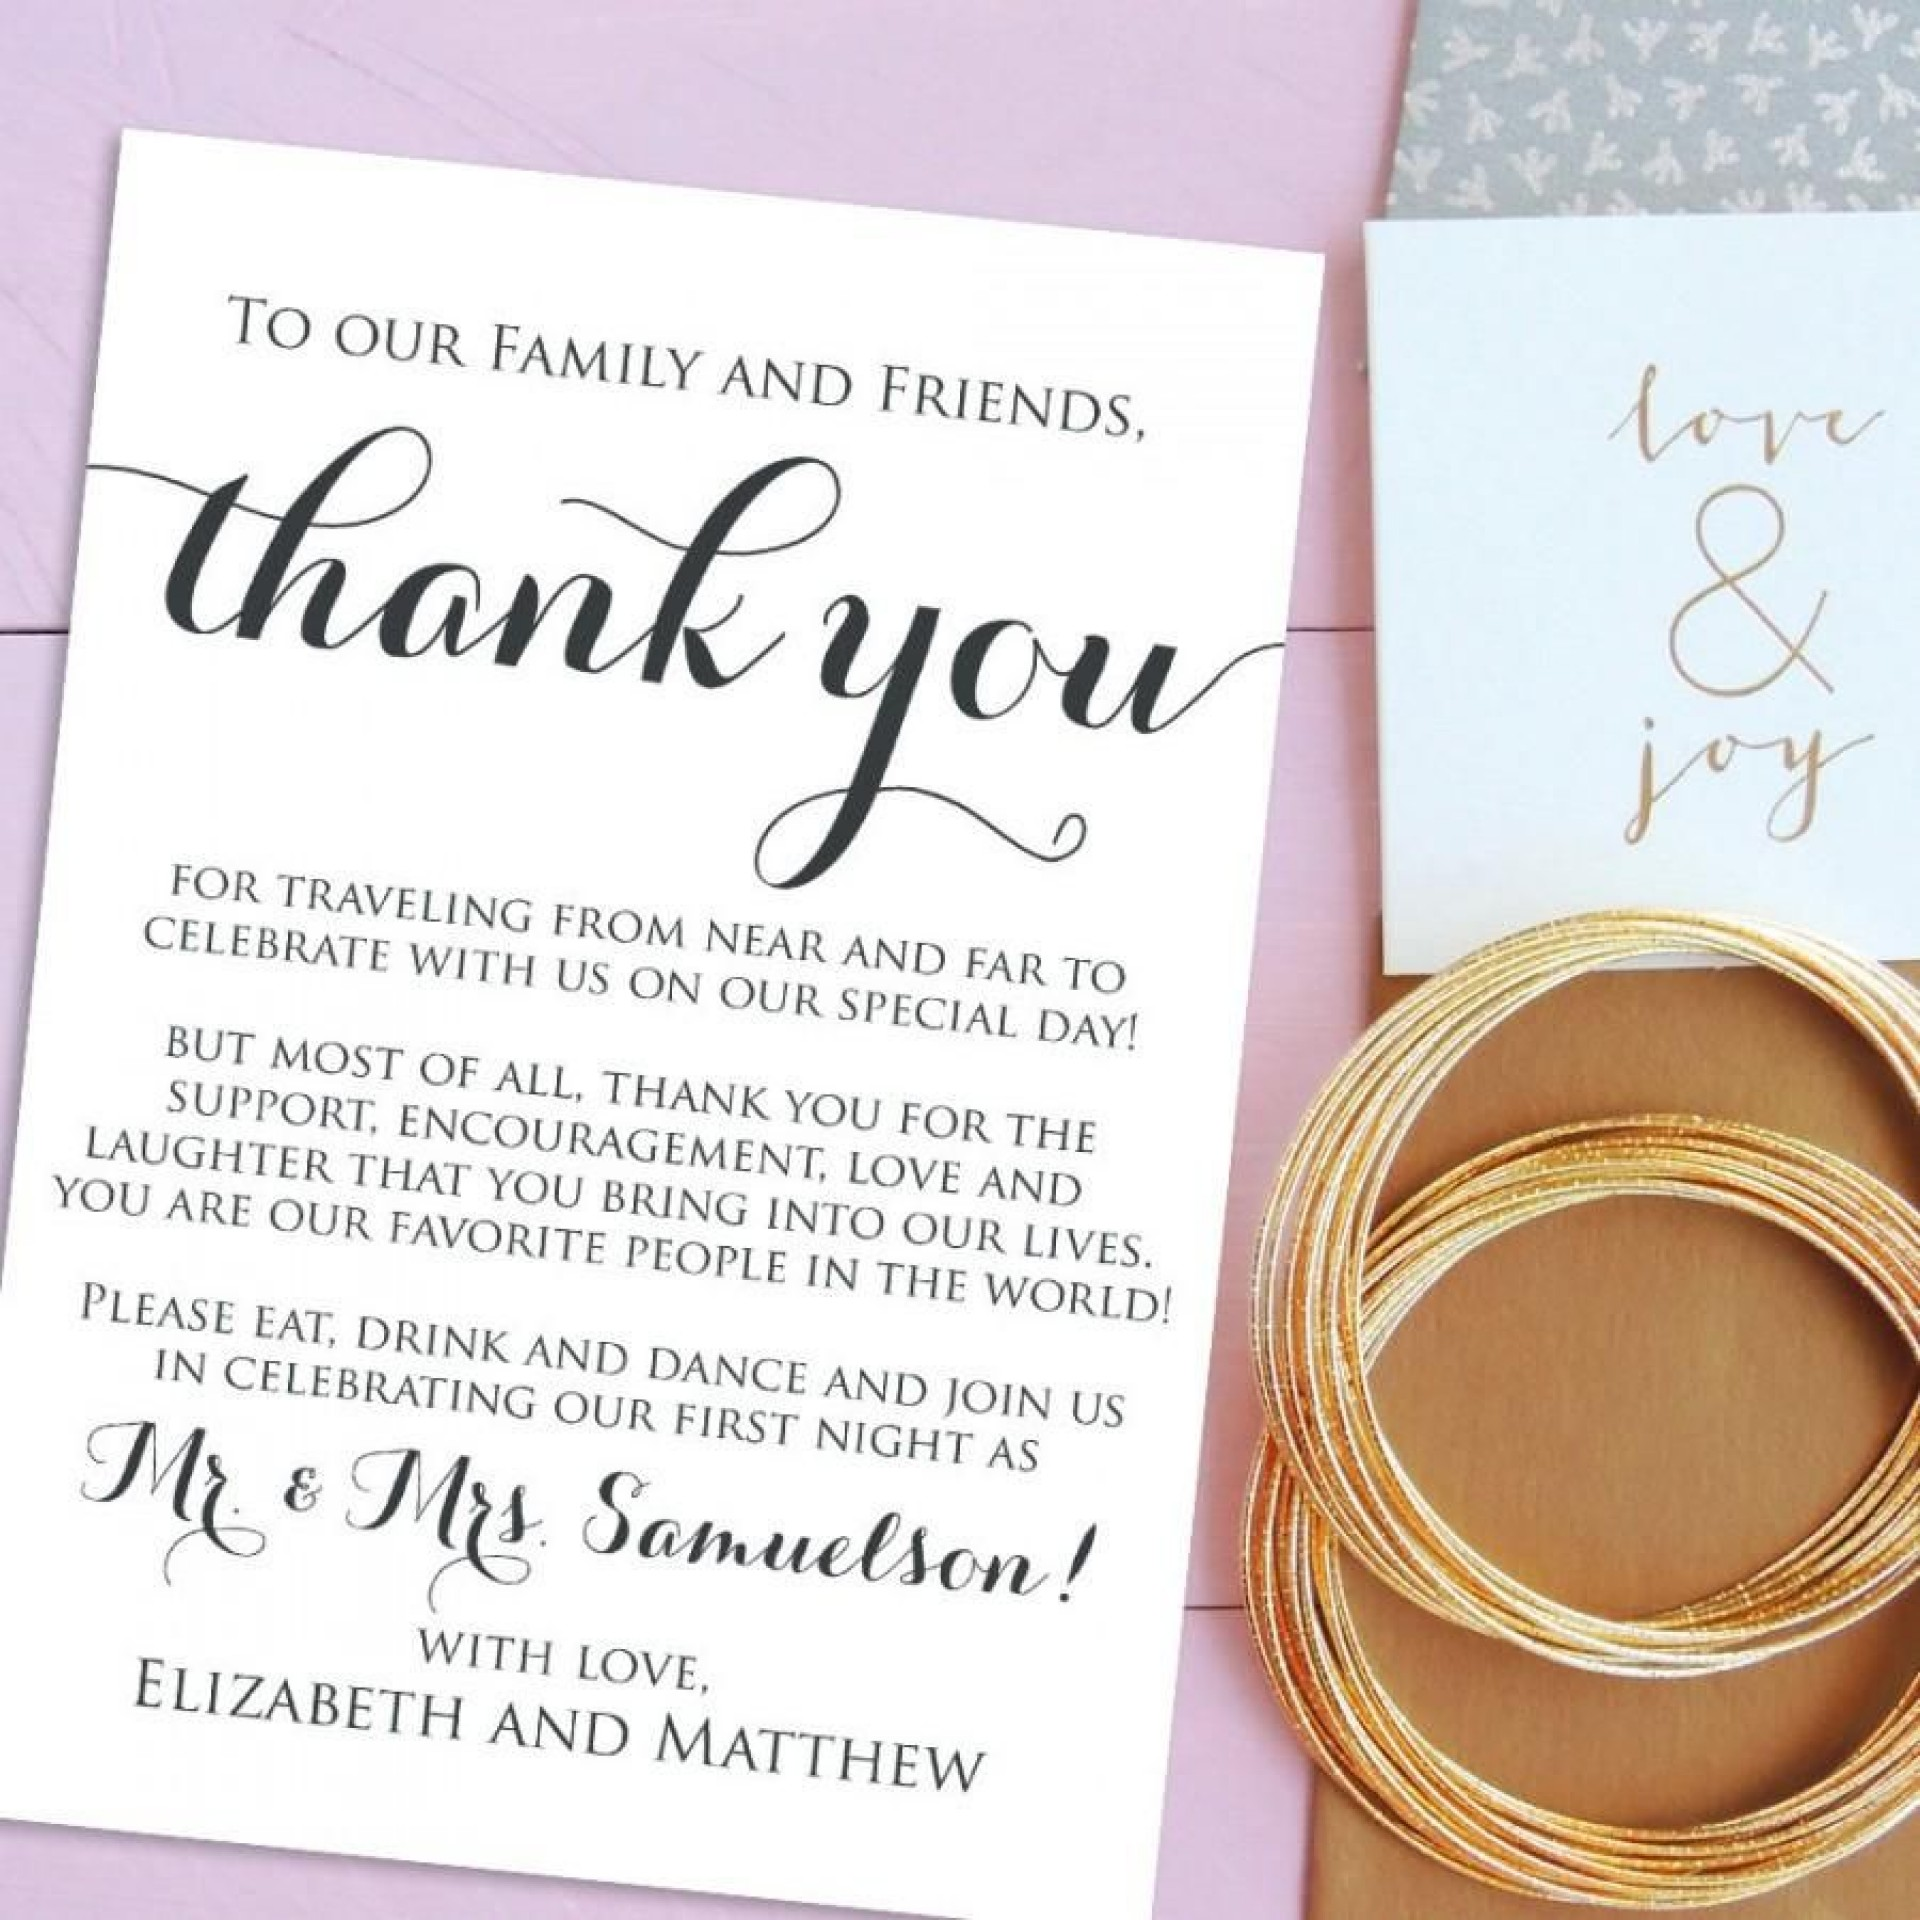 007 Fantastic Wedding Welcome Letter Template Word Highest Quality 1920